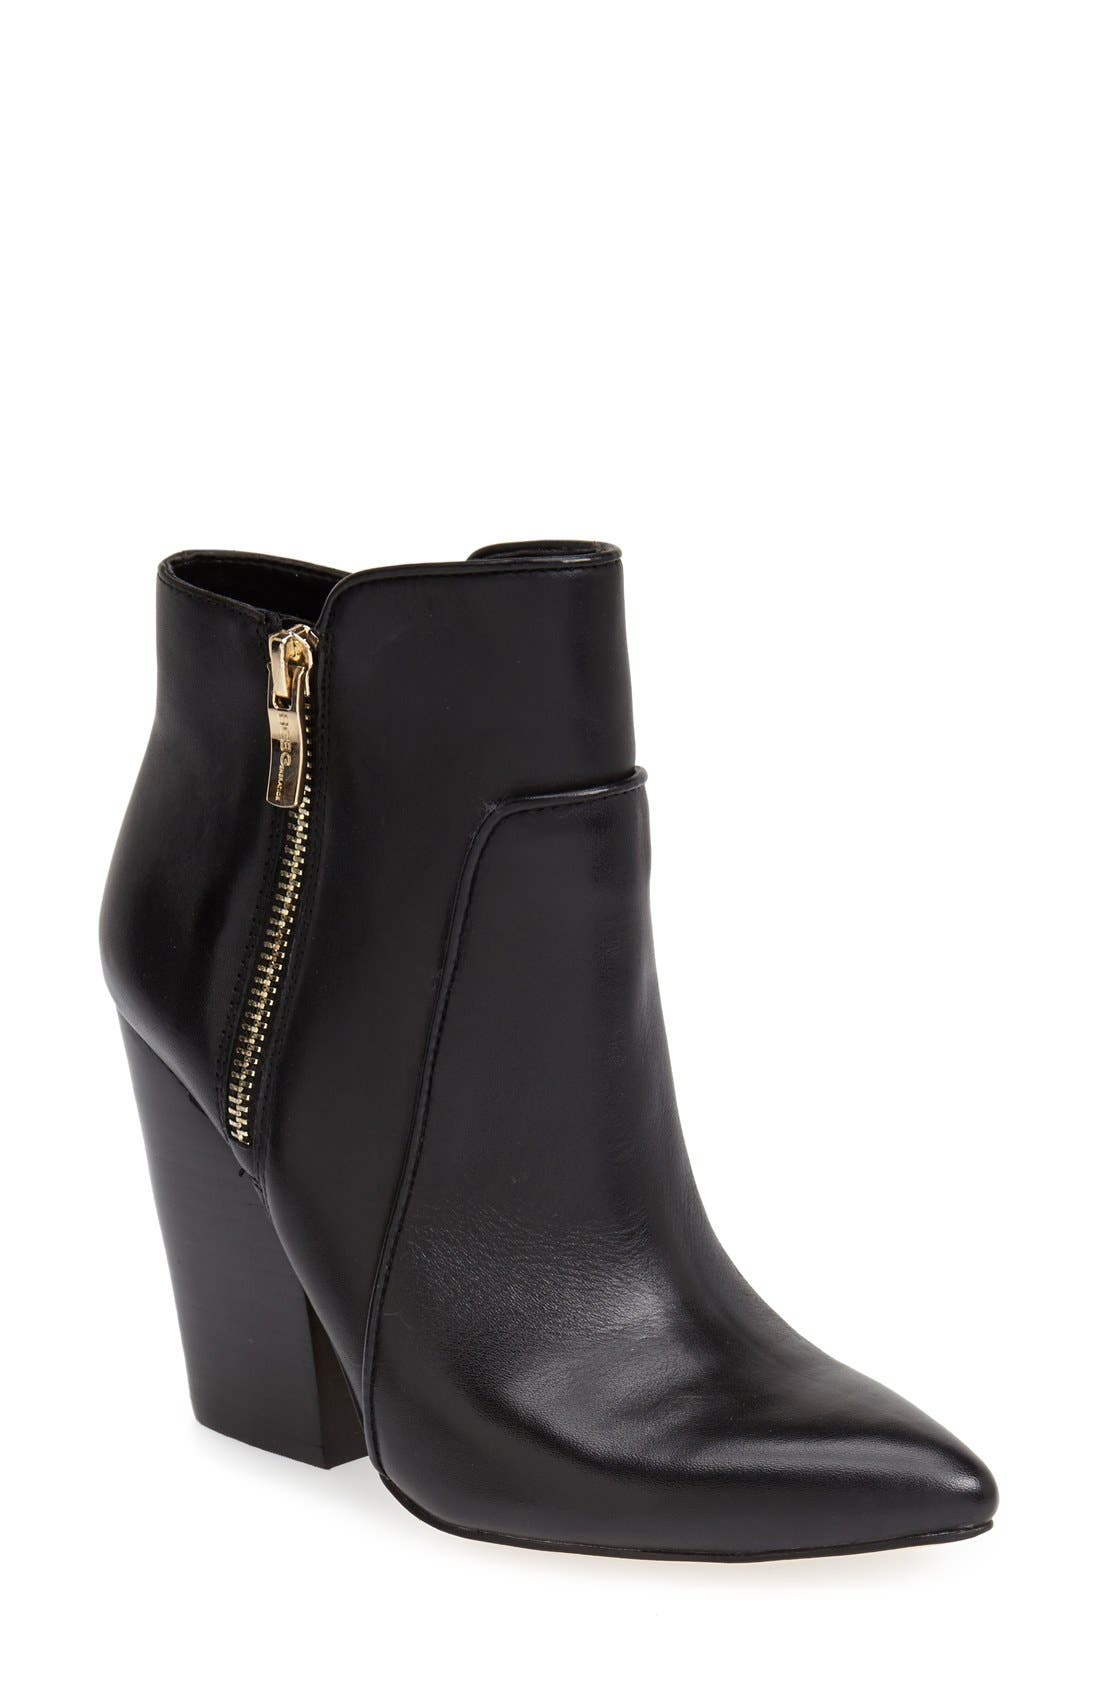 Alternate Image 1 Selected - BCBGeneration 'Jules' Pointy Toe Leather Bootie (Women)